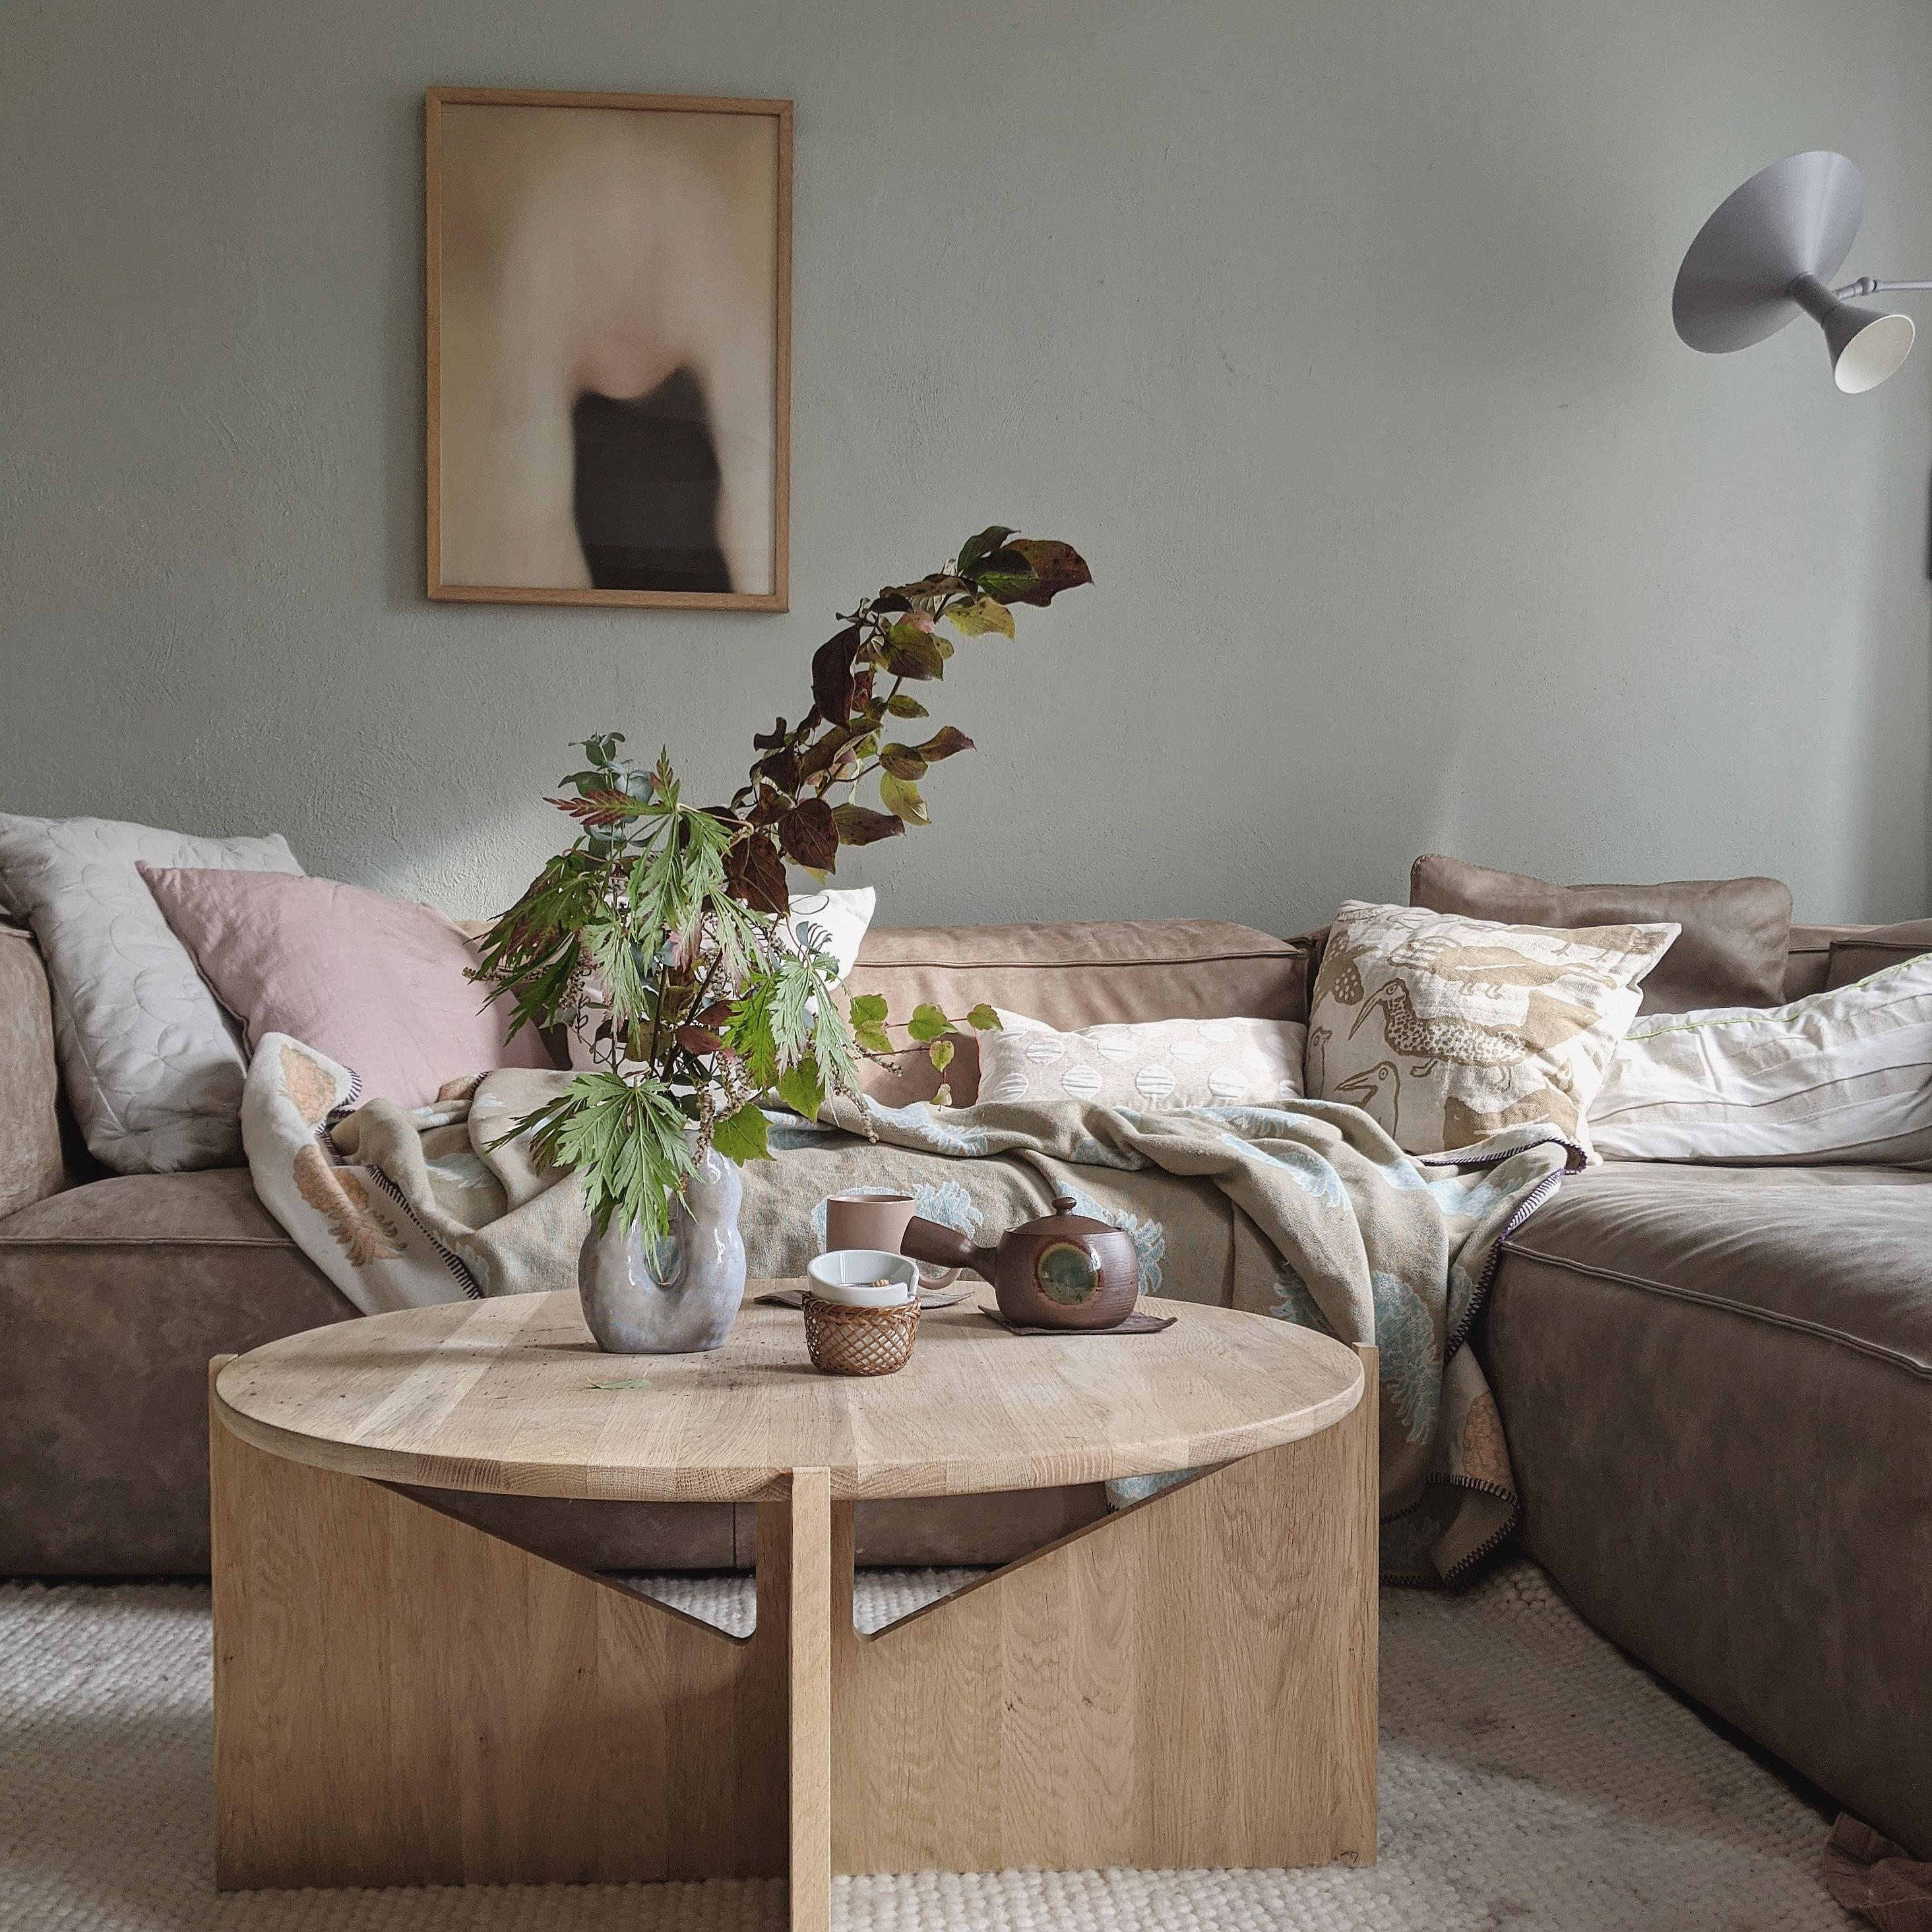 #livingroom #homedecor #interior#decoration#altbau #homestory#hygge#wohnzimmer #couchstyle#scandinavisch#living#cozy